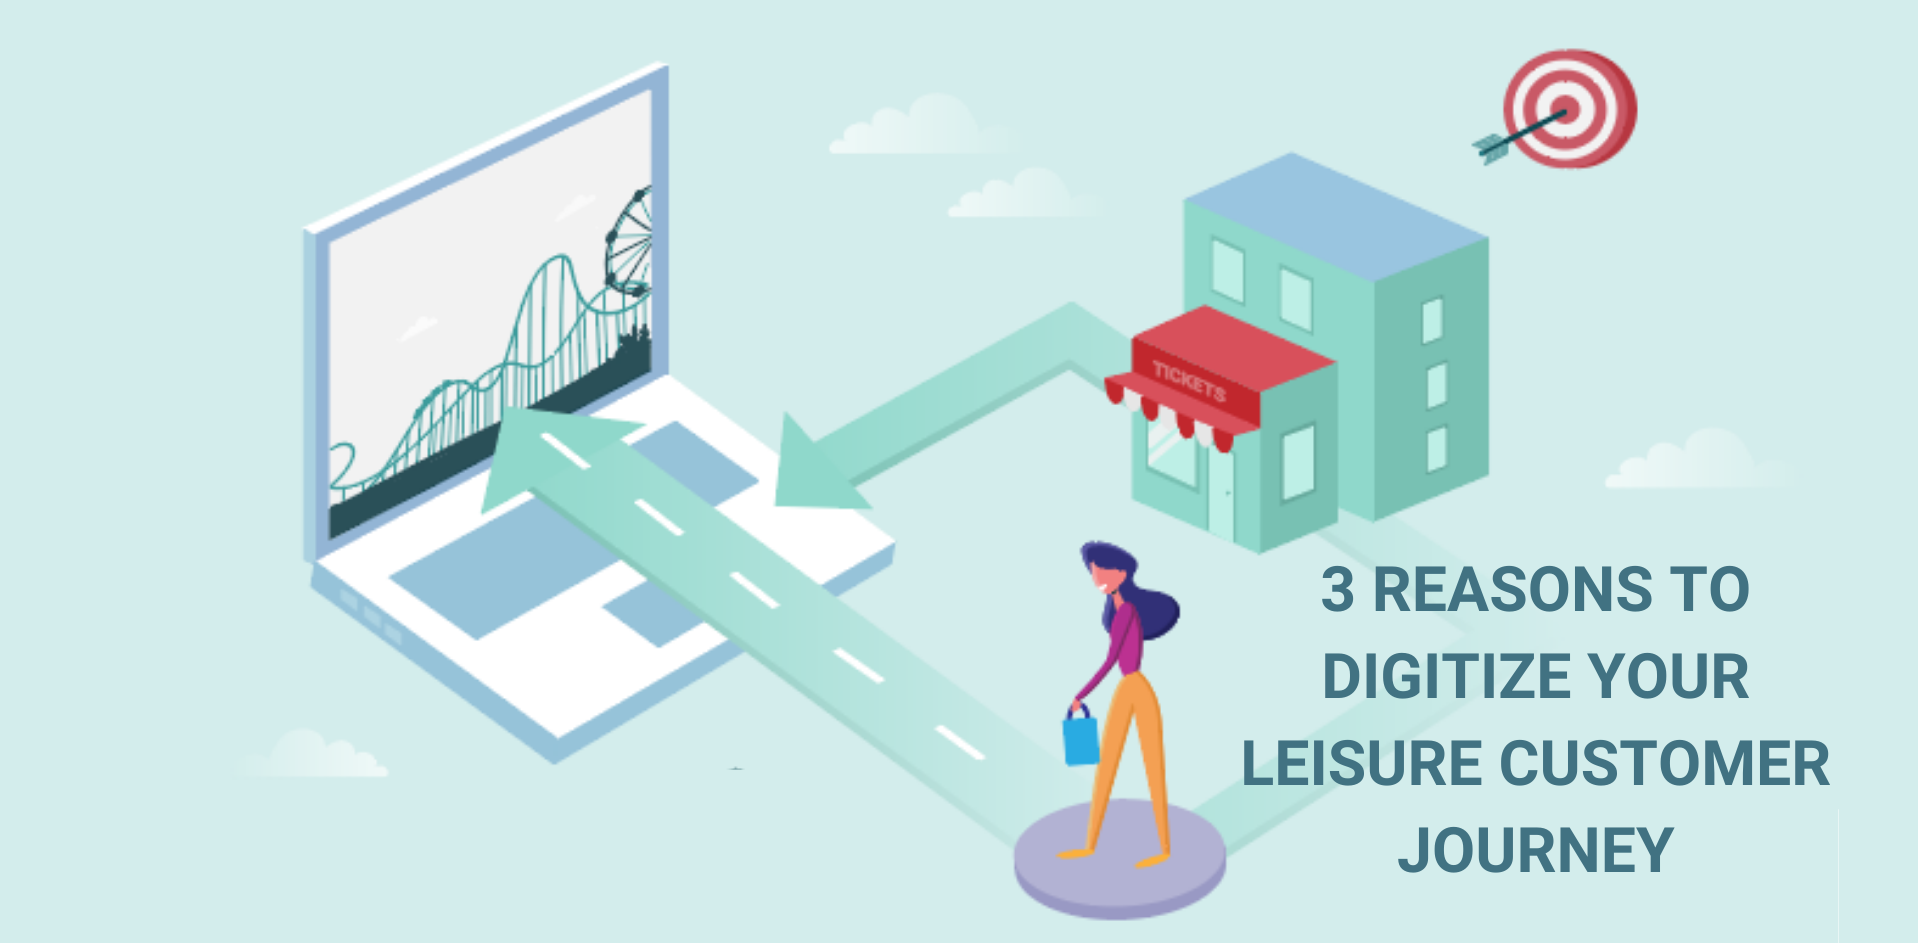 3 reasons to digitize your leisure customer journey